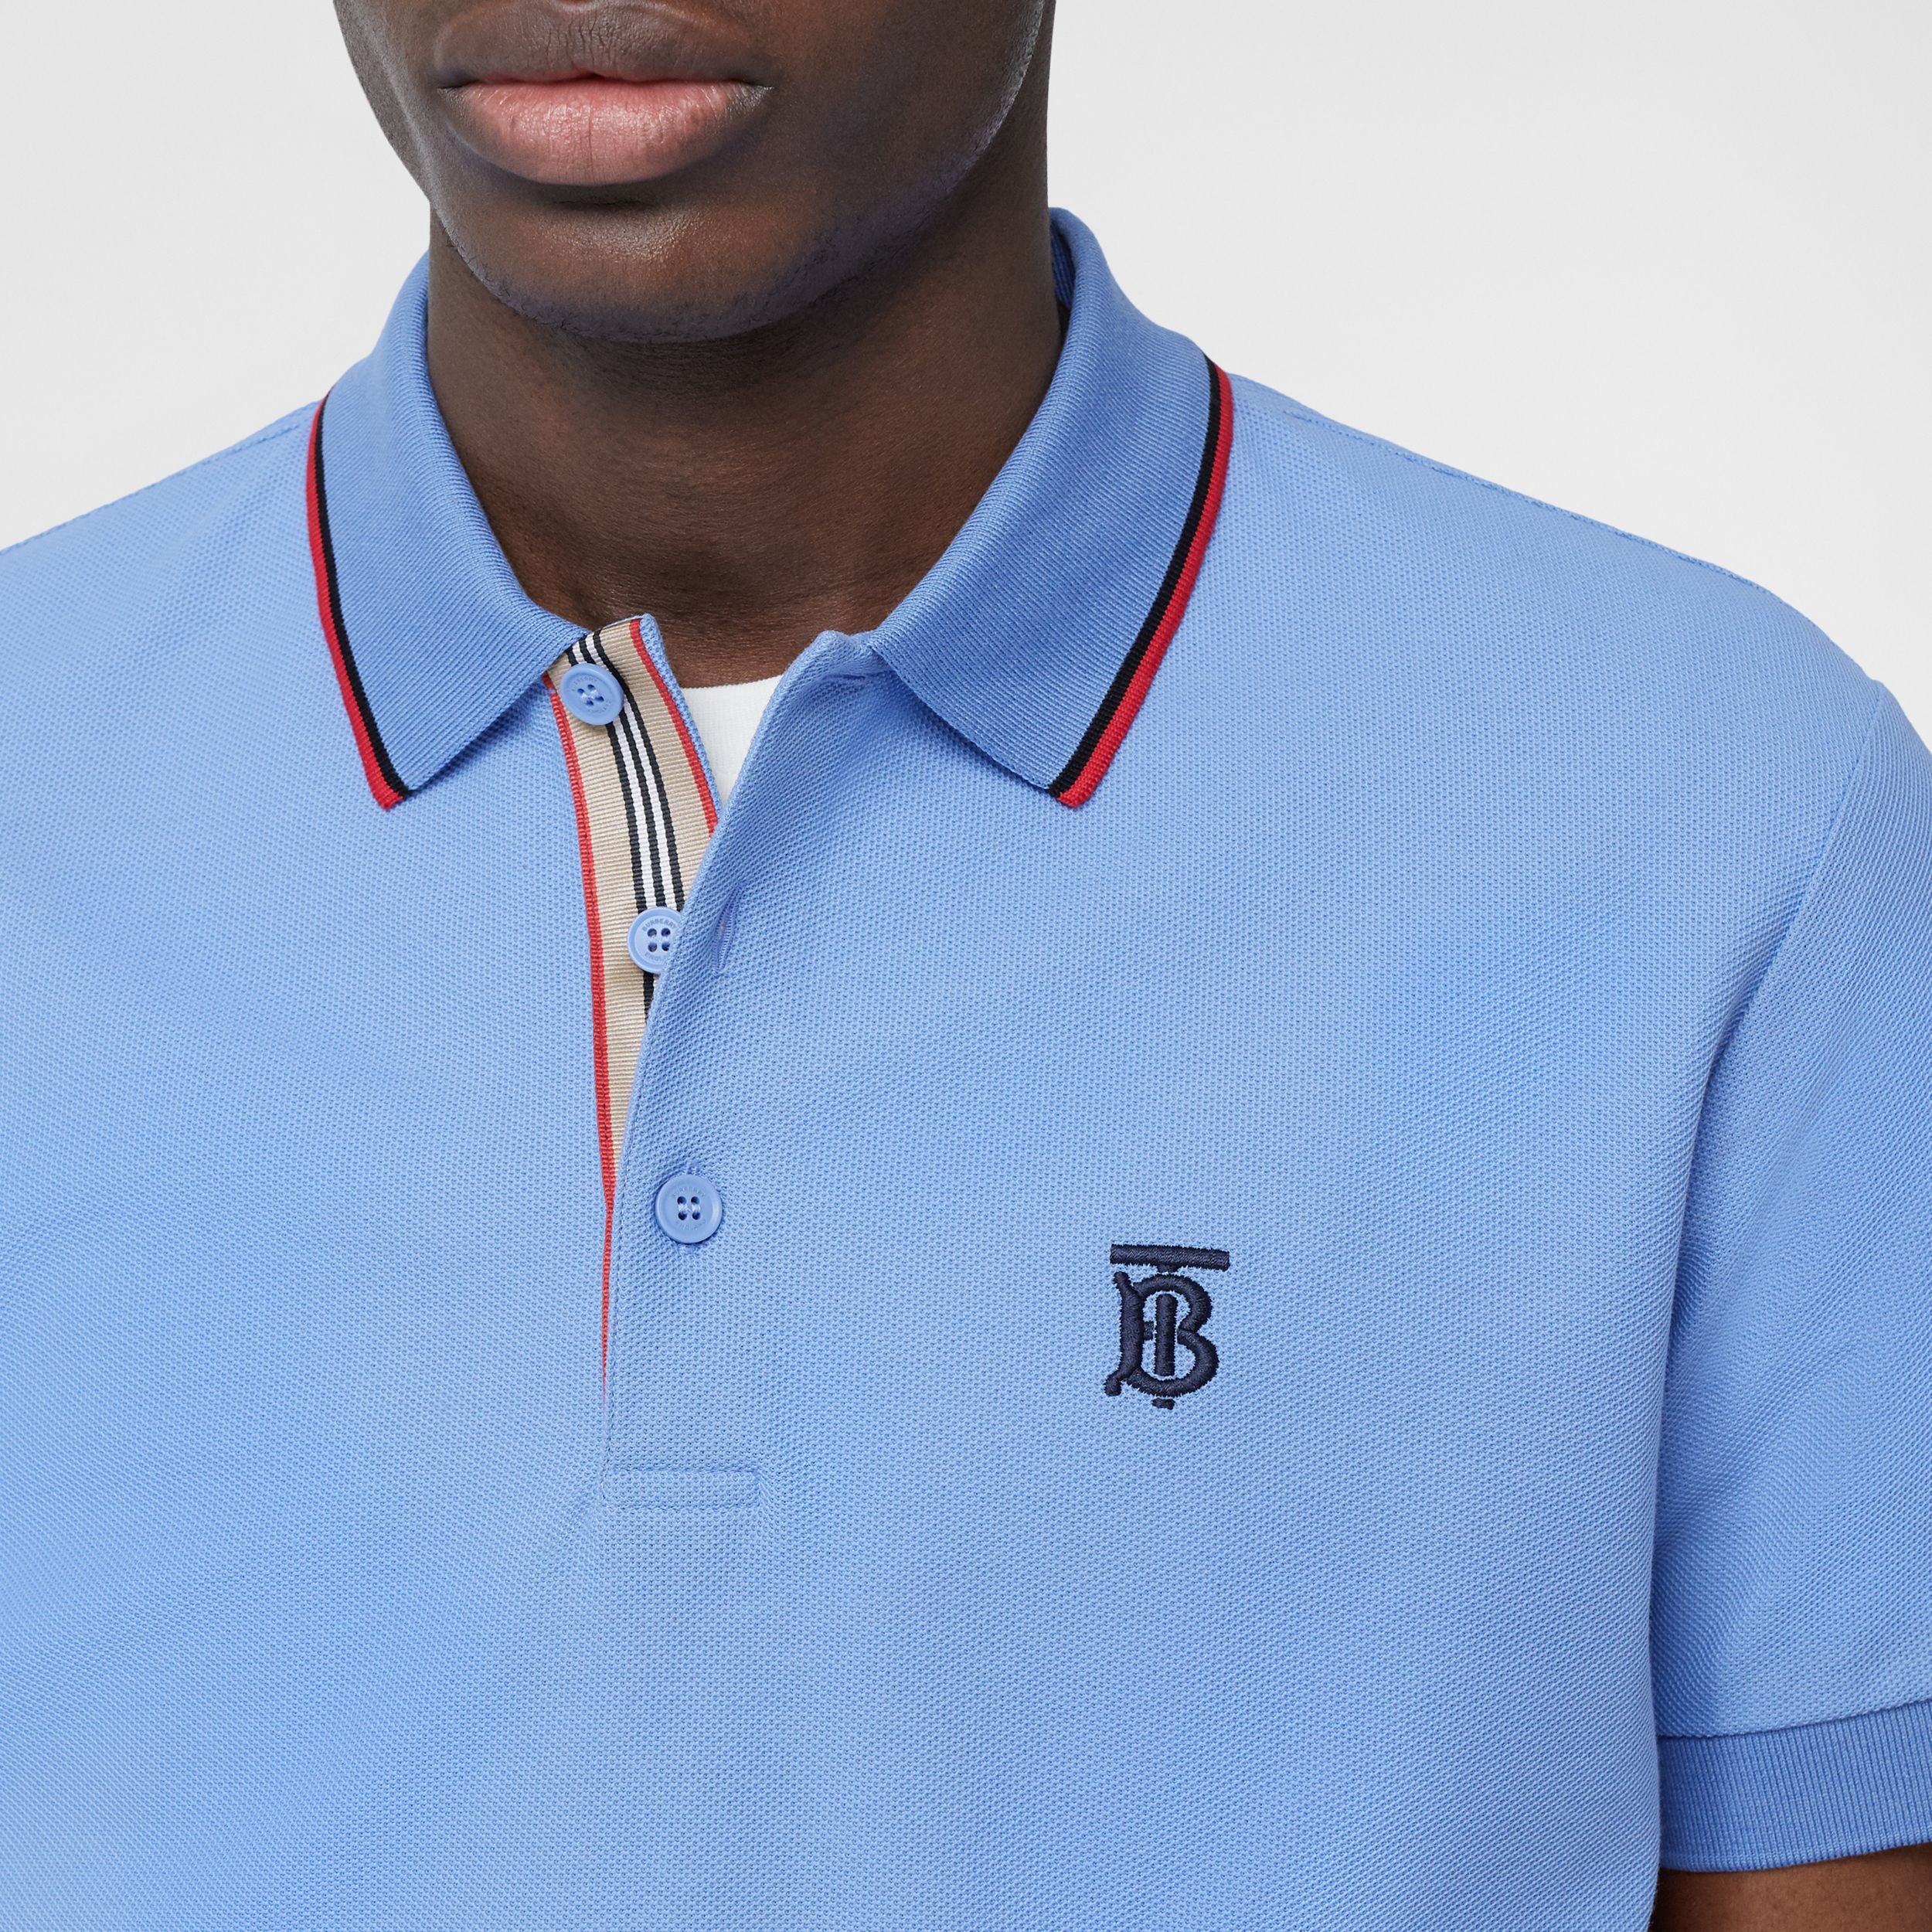 Monogram Motif Cotton Piqué Polo Shirt in Opal Blue - Men | Burberry Australia - 2